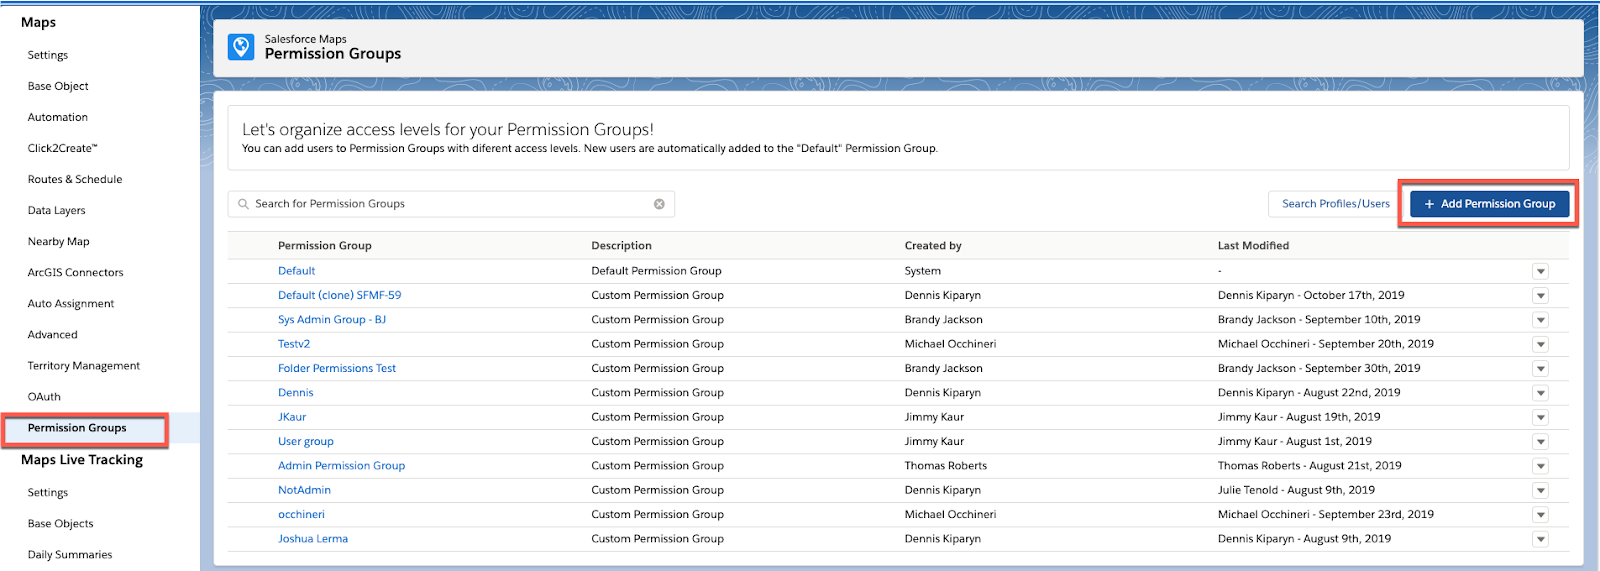 Screenshot shows the Salesforce Maps Permission Groups page and highlights the Add Permission Group button.